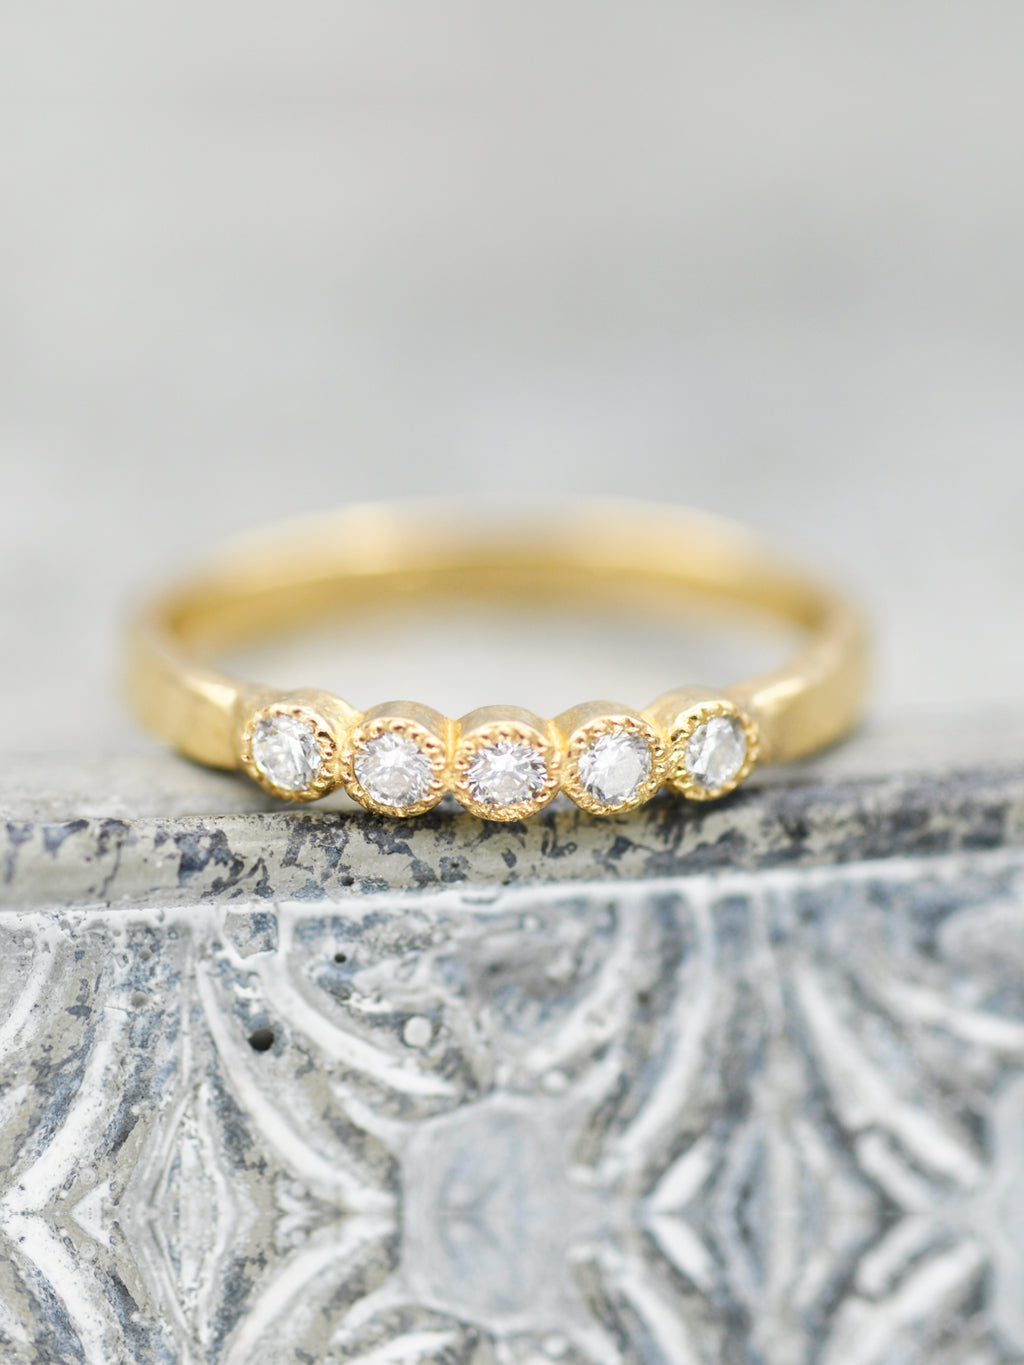 14K Daisy Diamond Ring - 2.4mm